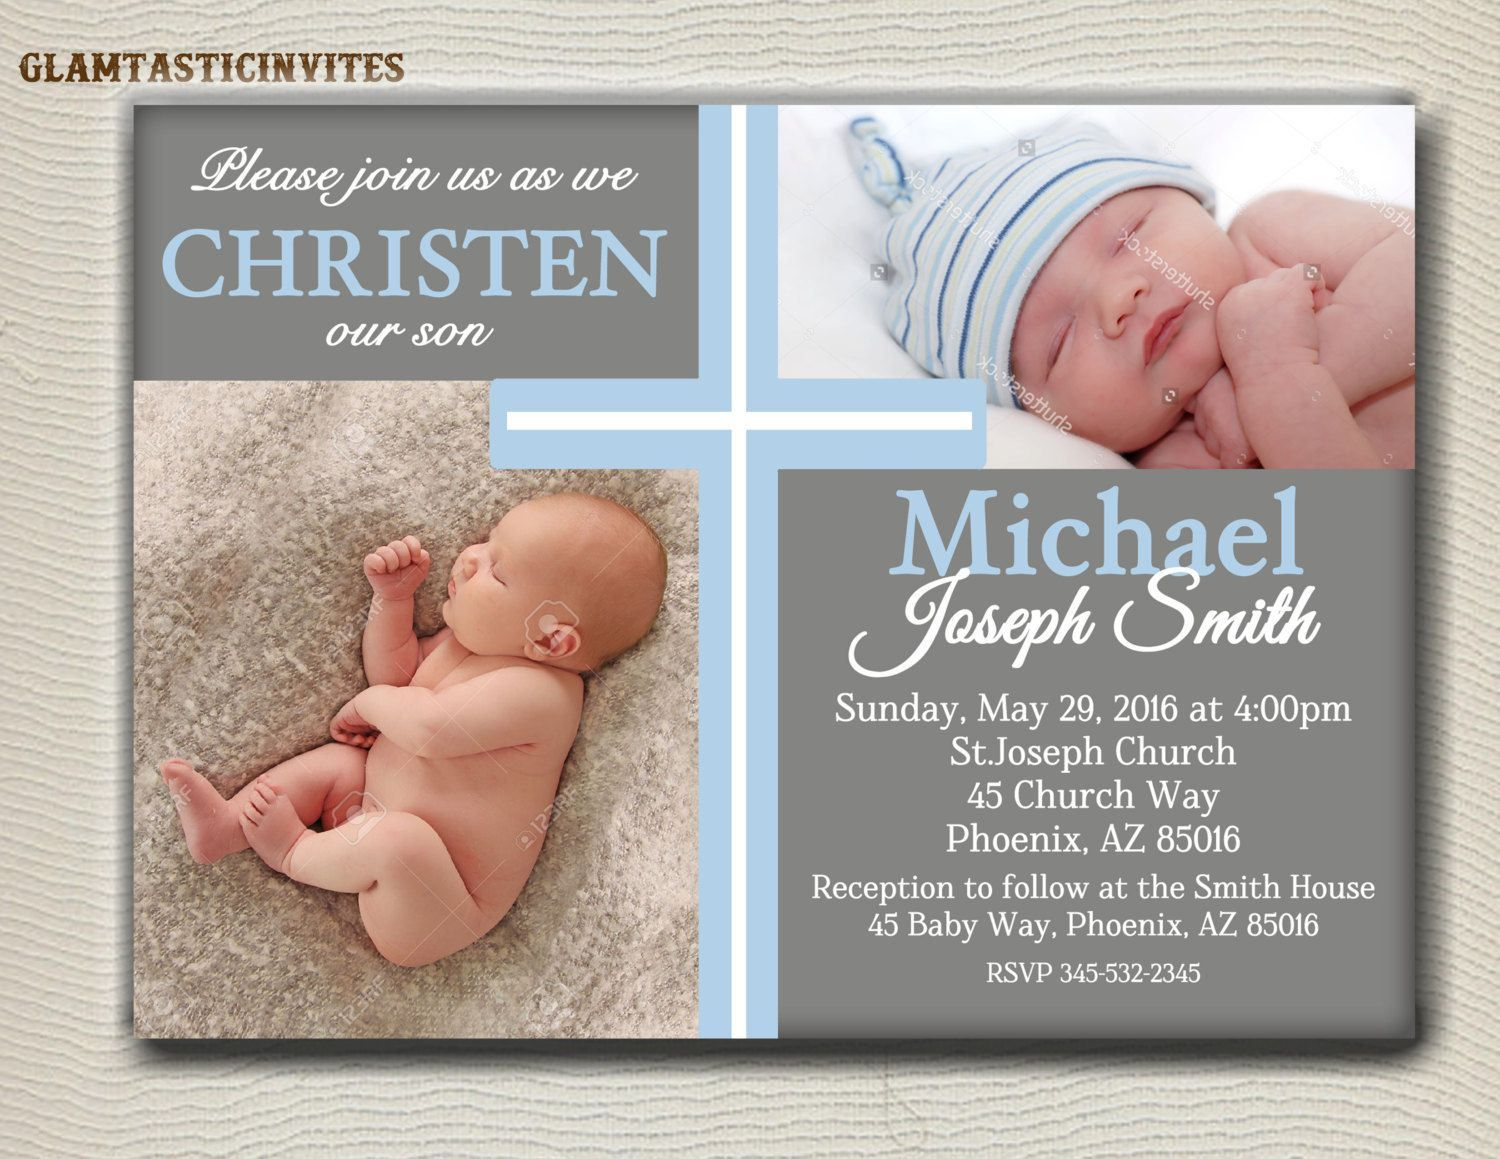 Baby baptism invitations templates christening pinterest baby baptism invitations templates stopboris